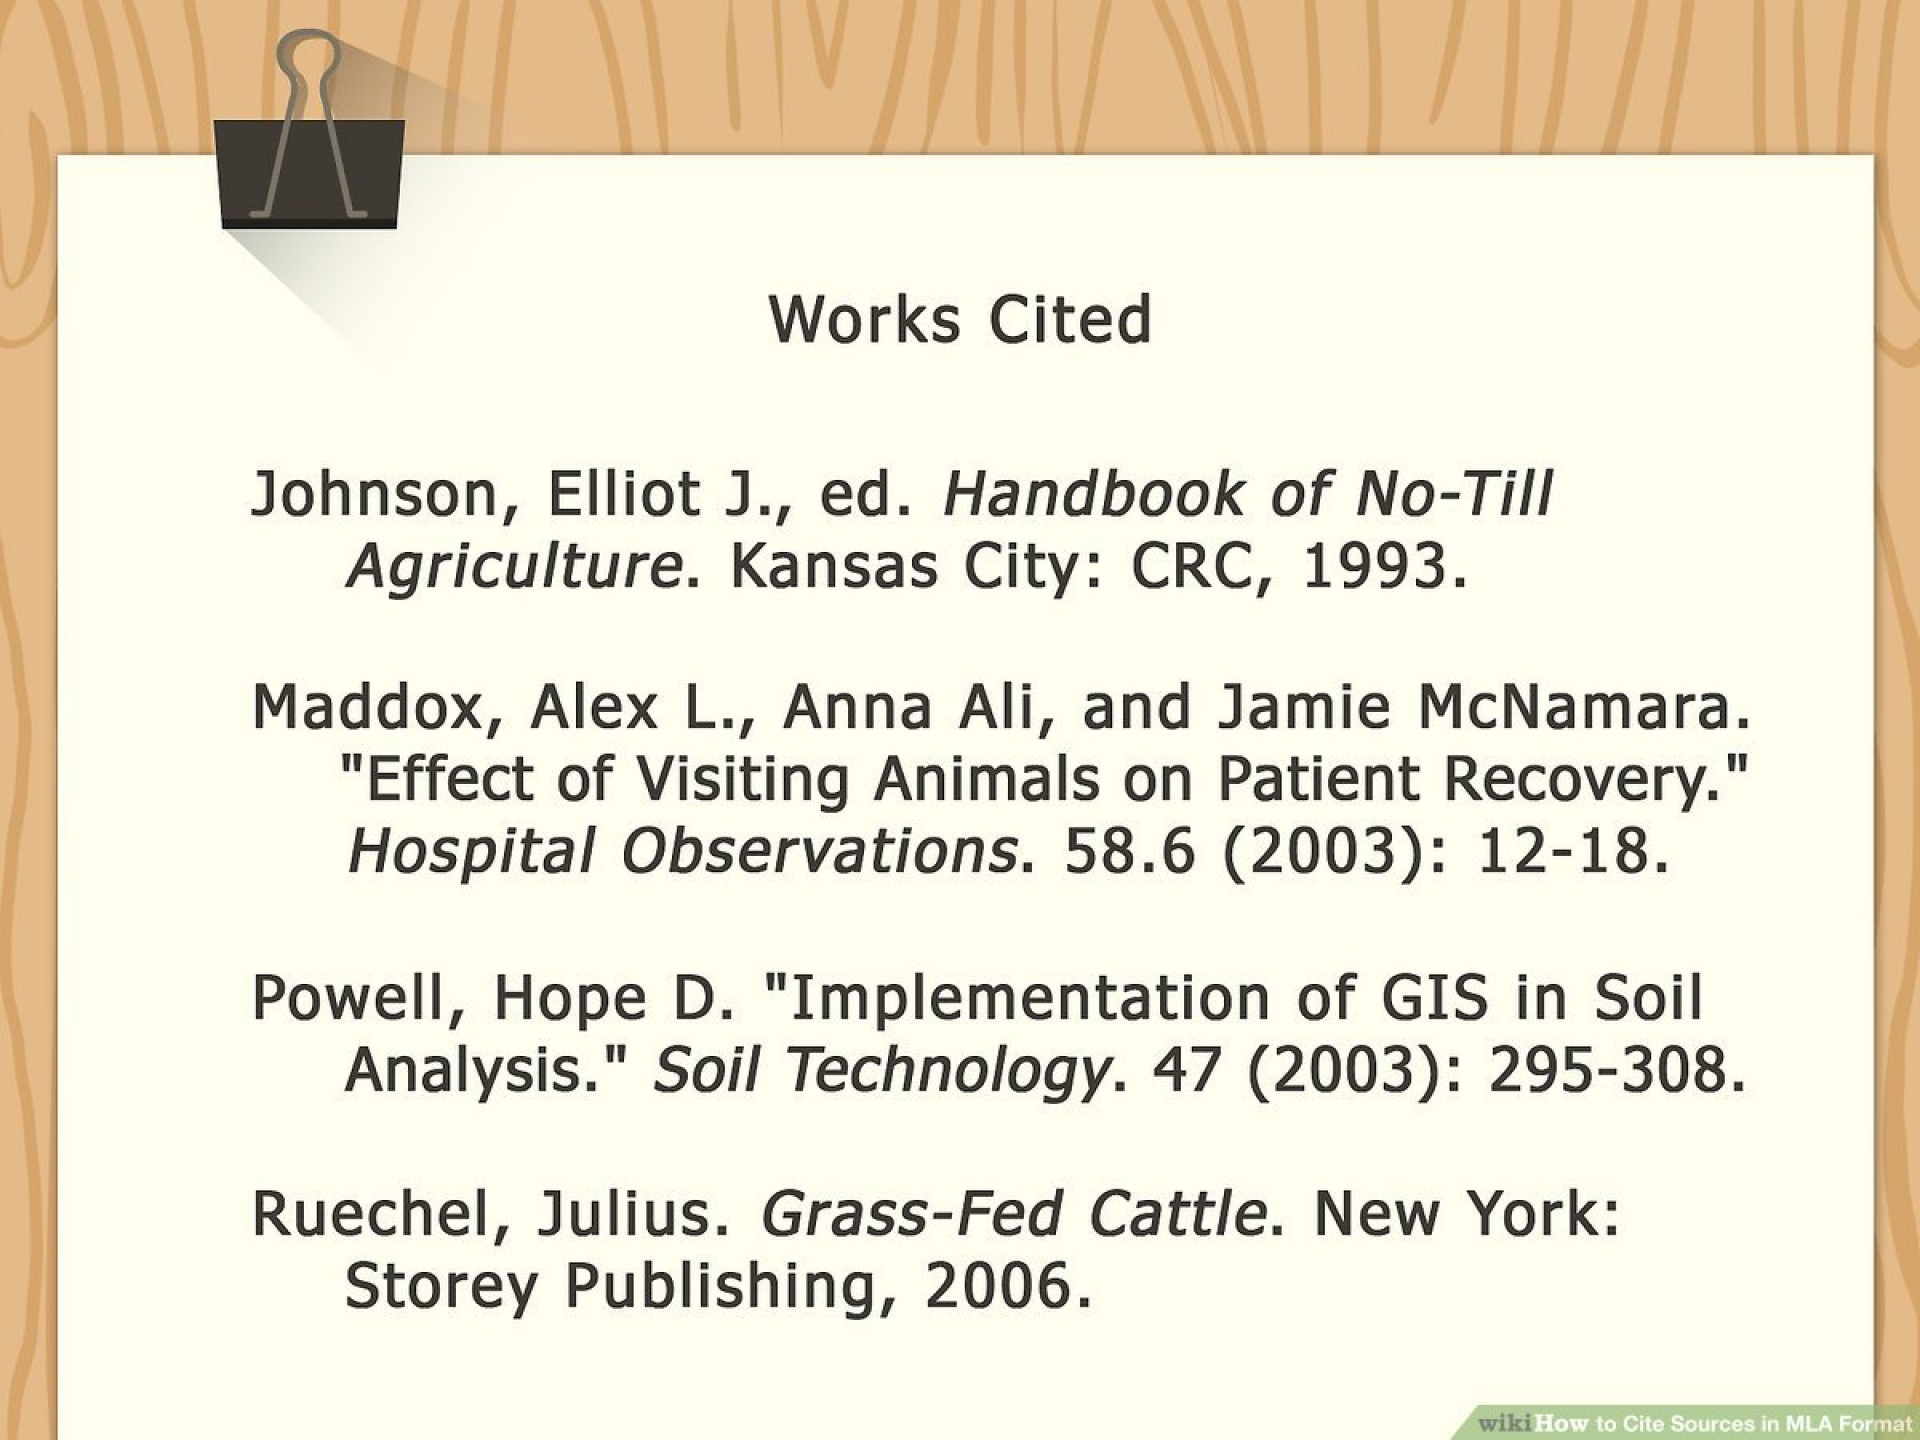 013 Research Paper Aid372891 V4 1200px Cite Sources In Mla Format Step Version Citation Striking Example Encyclopedia Article Book Purdue Owl 1920